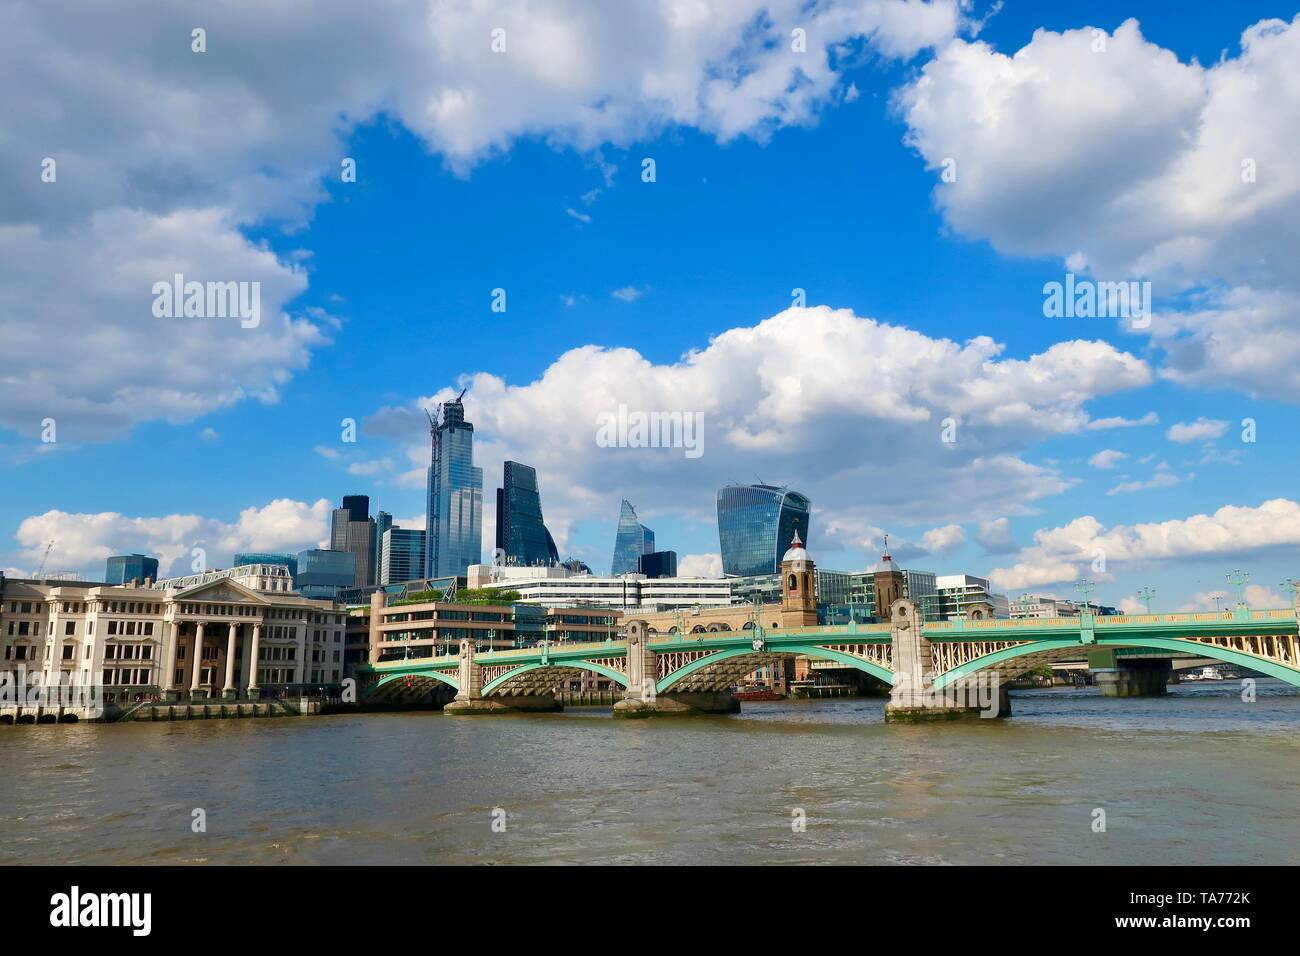 London, UK - 21 05 2019: City skyline, Blackfriars bridge and the River Thames, Stock Photo